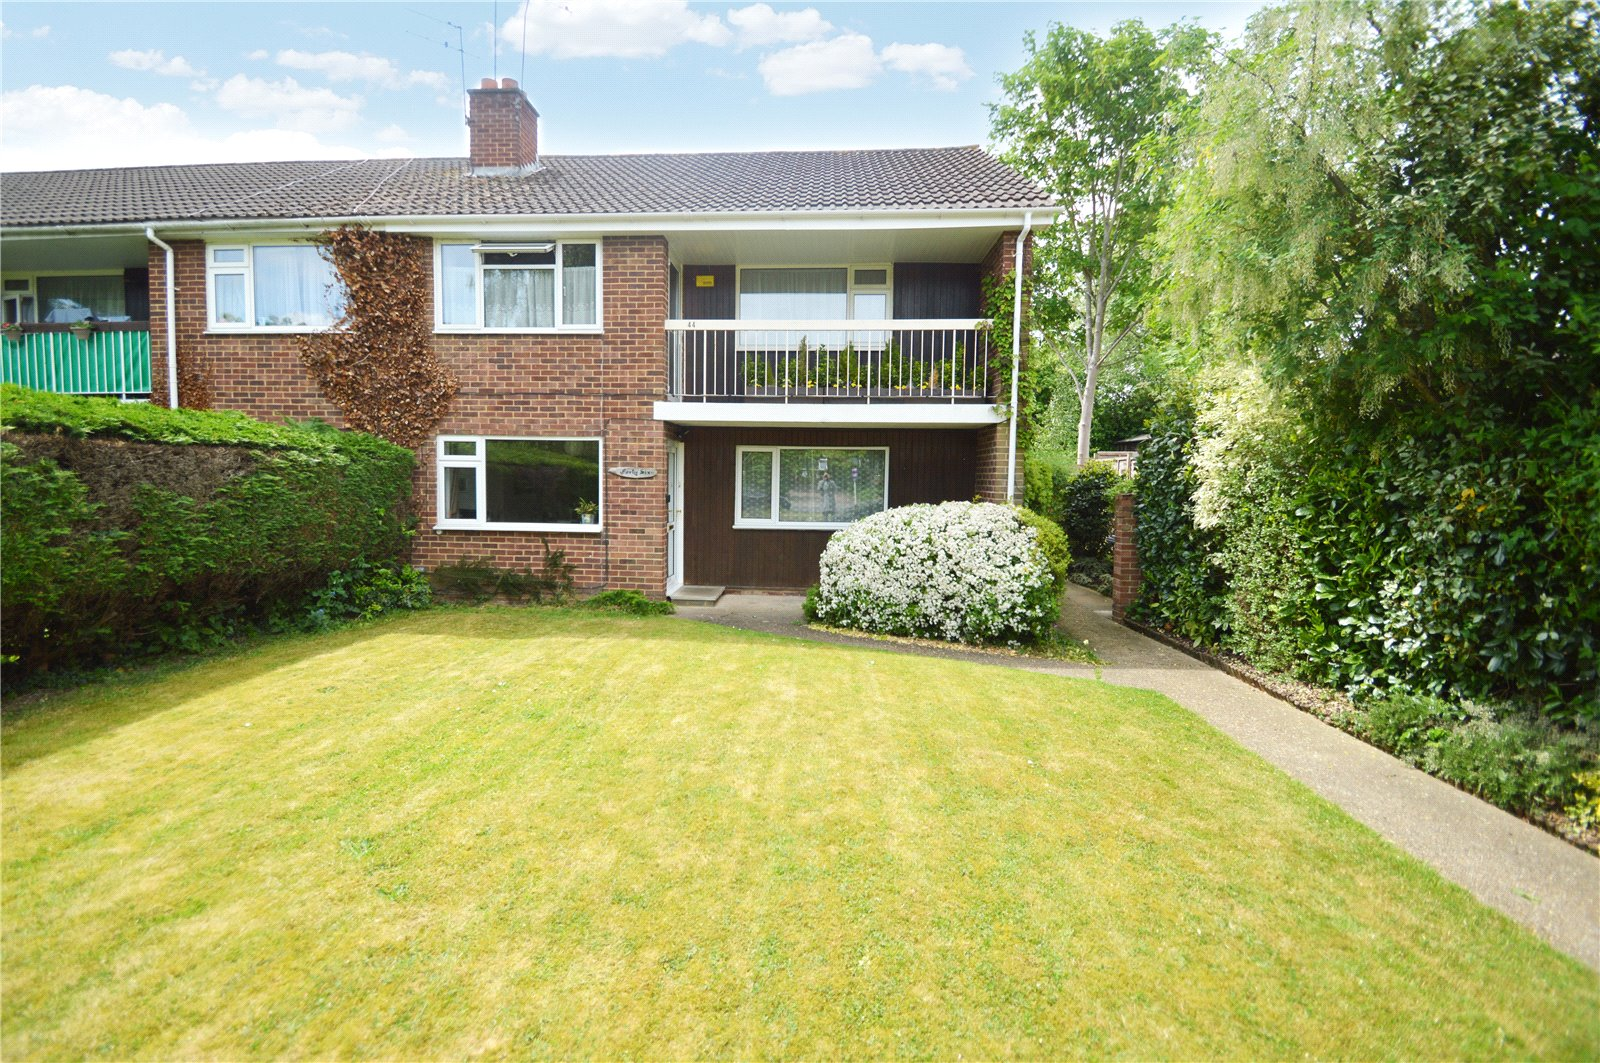 2 Bedrooms Maisonette Flat for sale in Wootton Way, Maidenhead, Berkshire, SL6